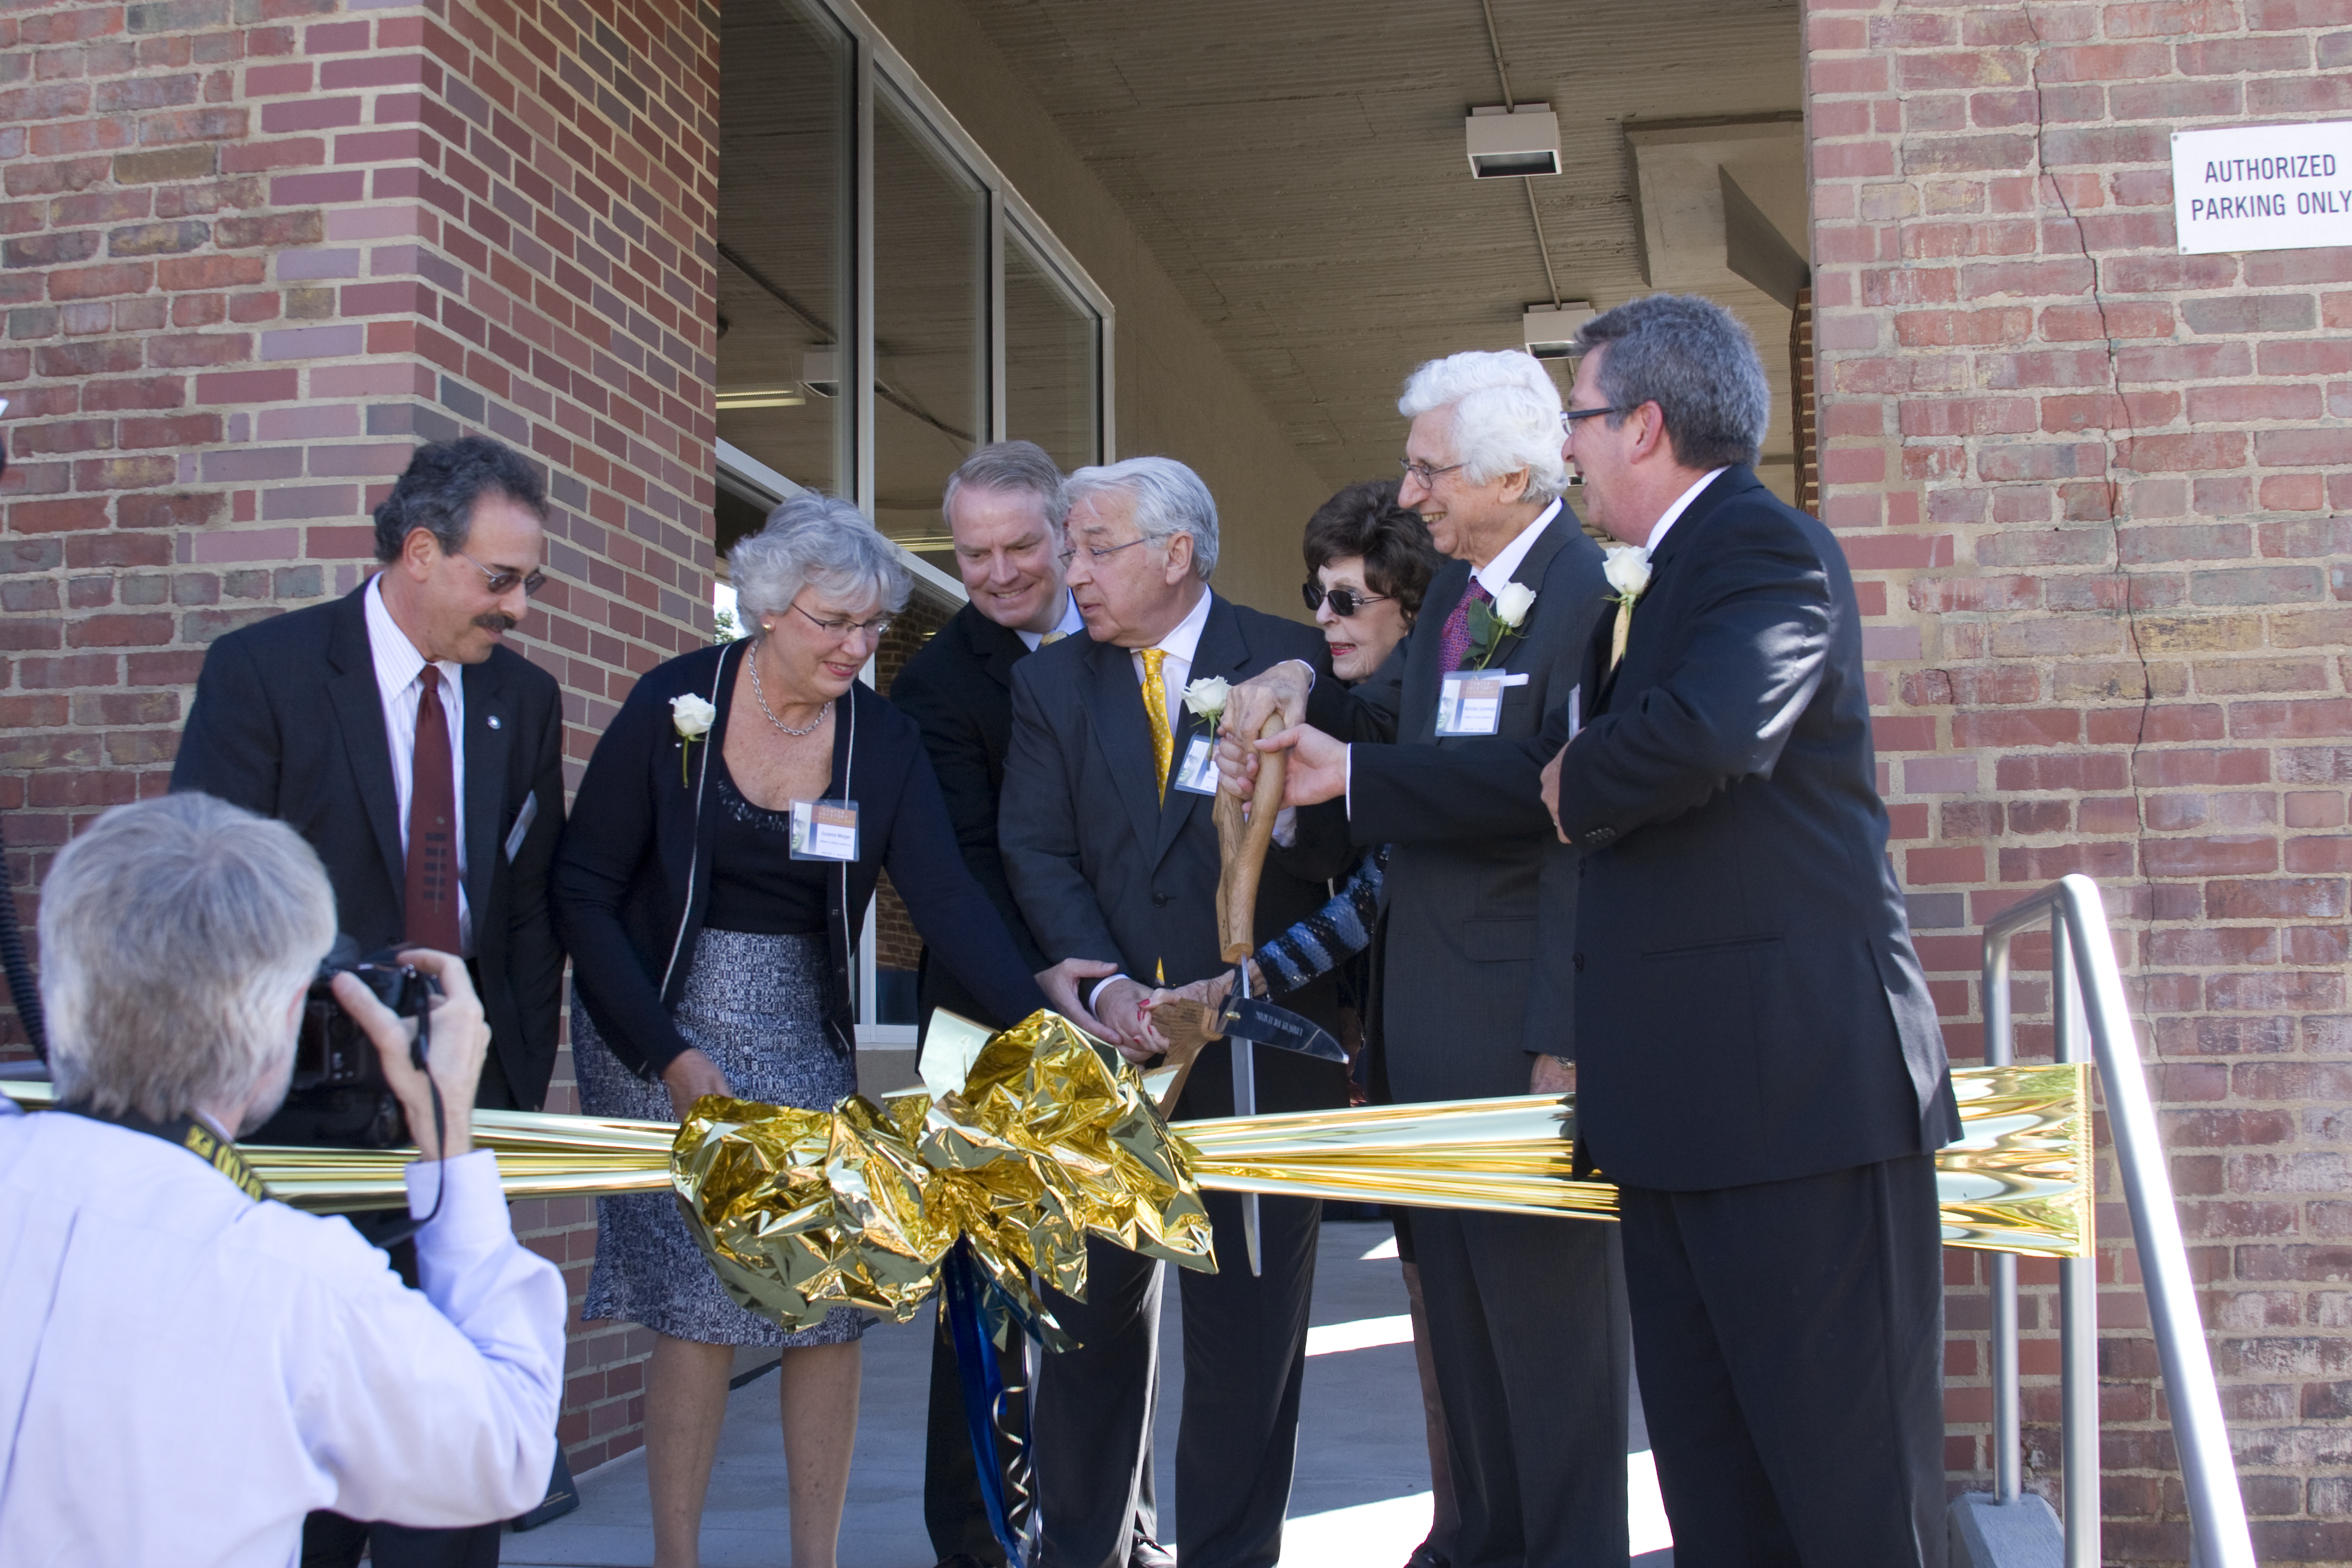 Dr. Baker, Drs. Nicholas Dorothy Cummings and others cutting the ribbon to the museum